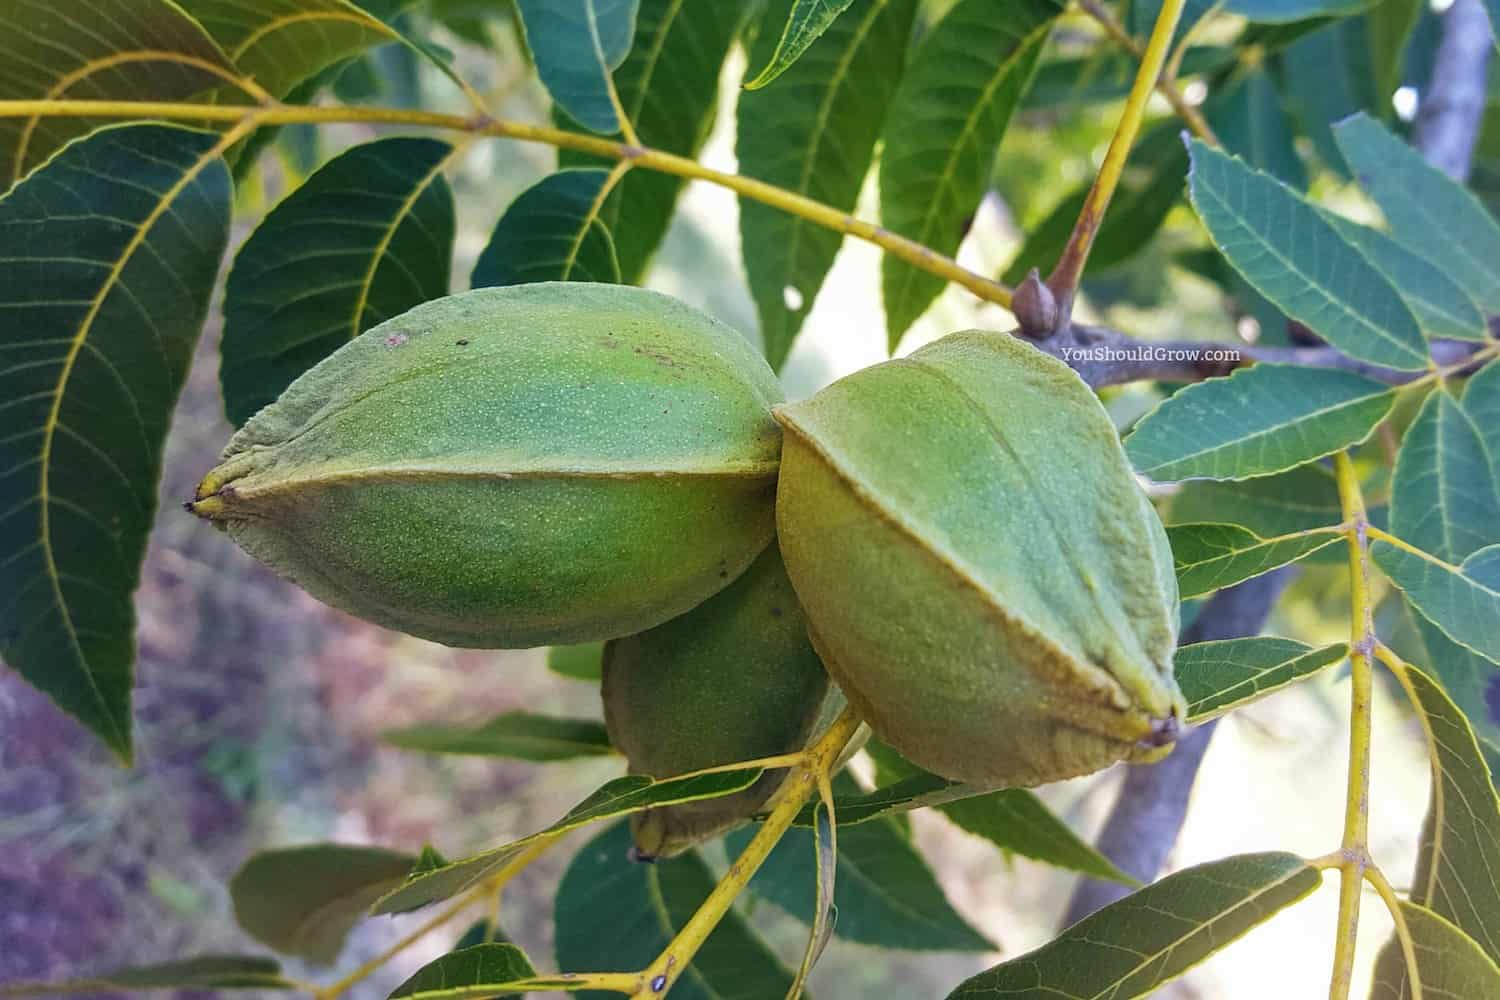 Pecans grow in green husks on beautiful giant trees. They are a fall food staple here in the south. Enjoy one of these delicious pecan recipes with your family!